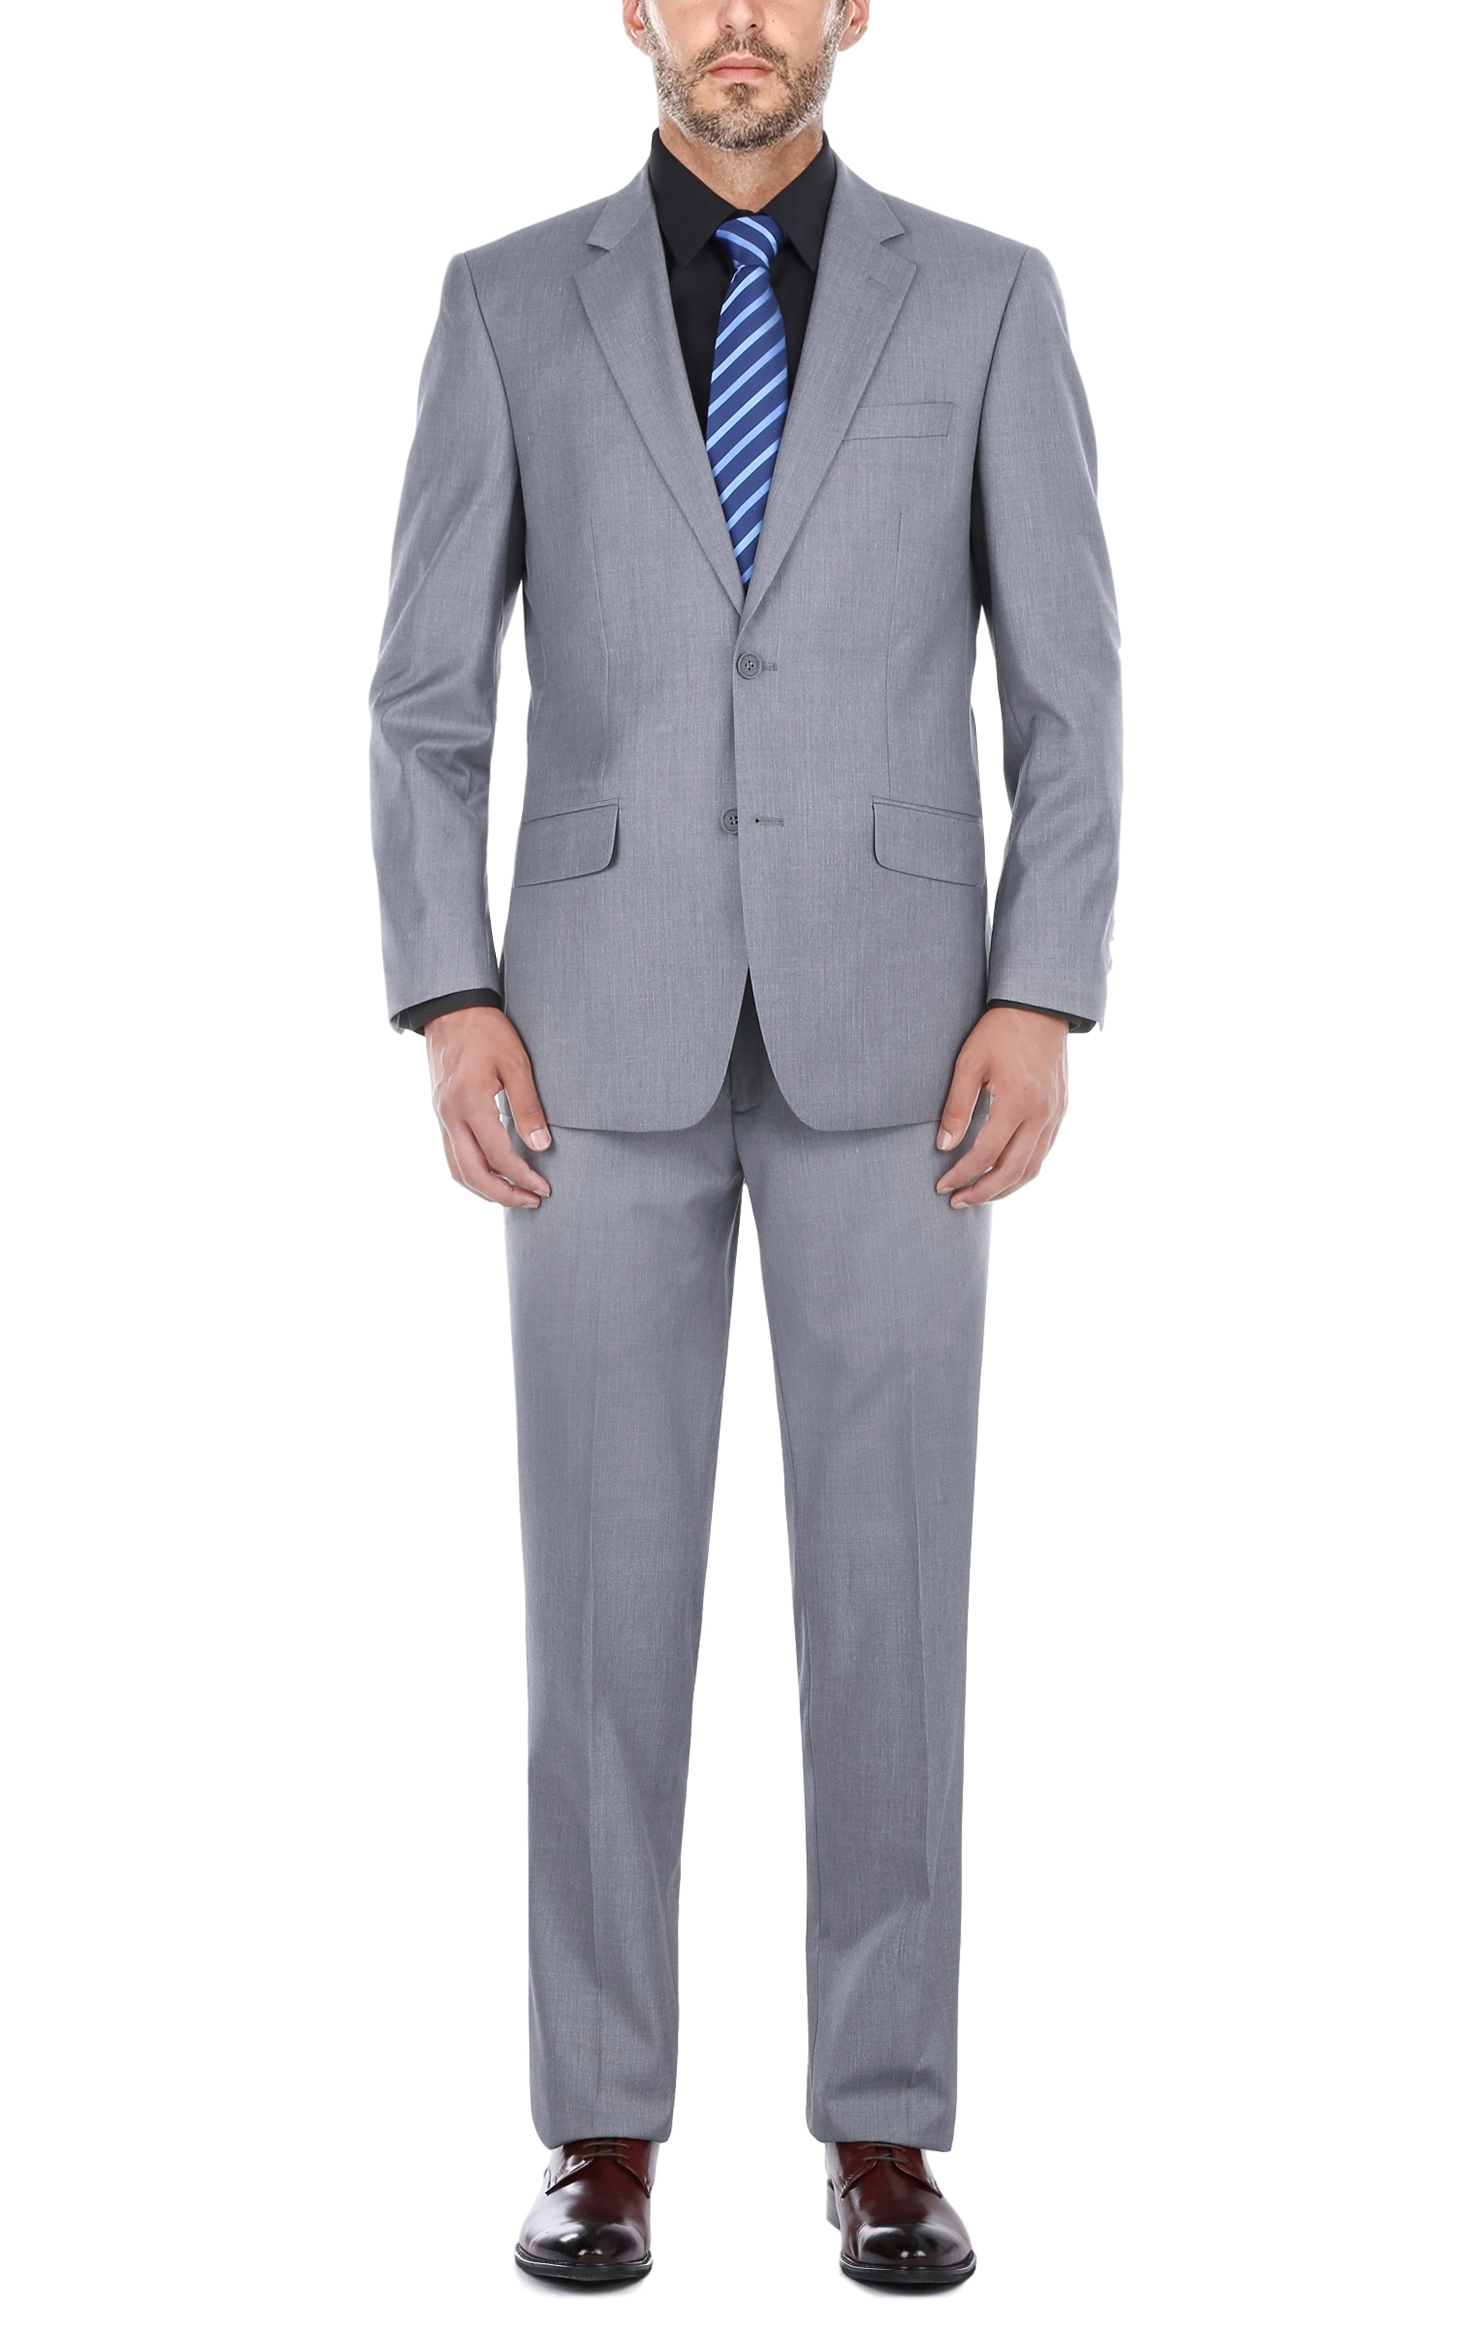 Men's Gray Suit